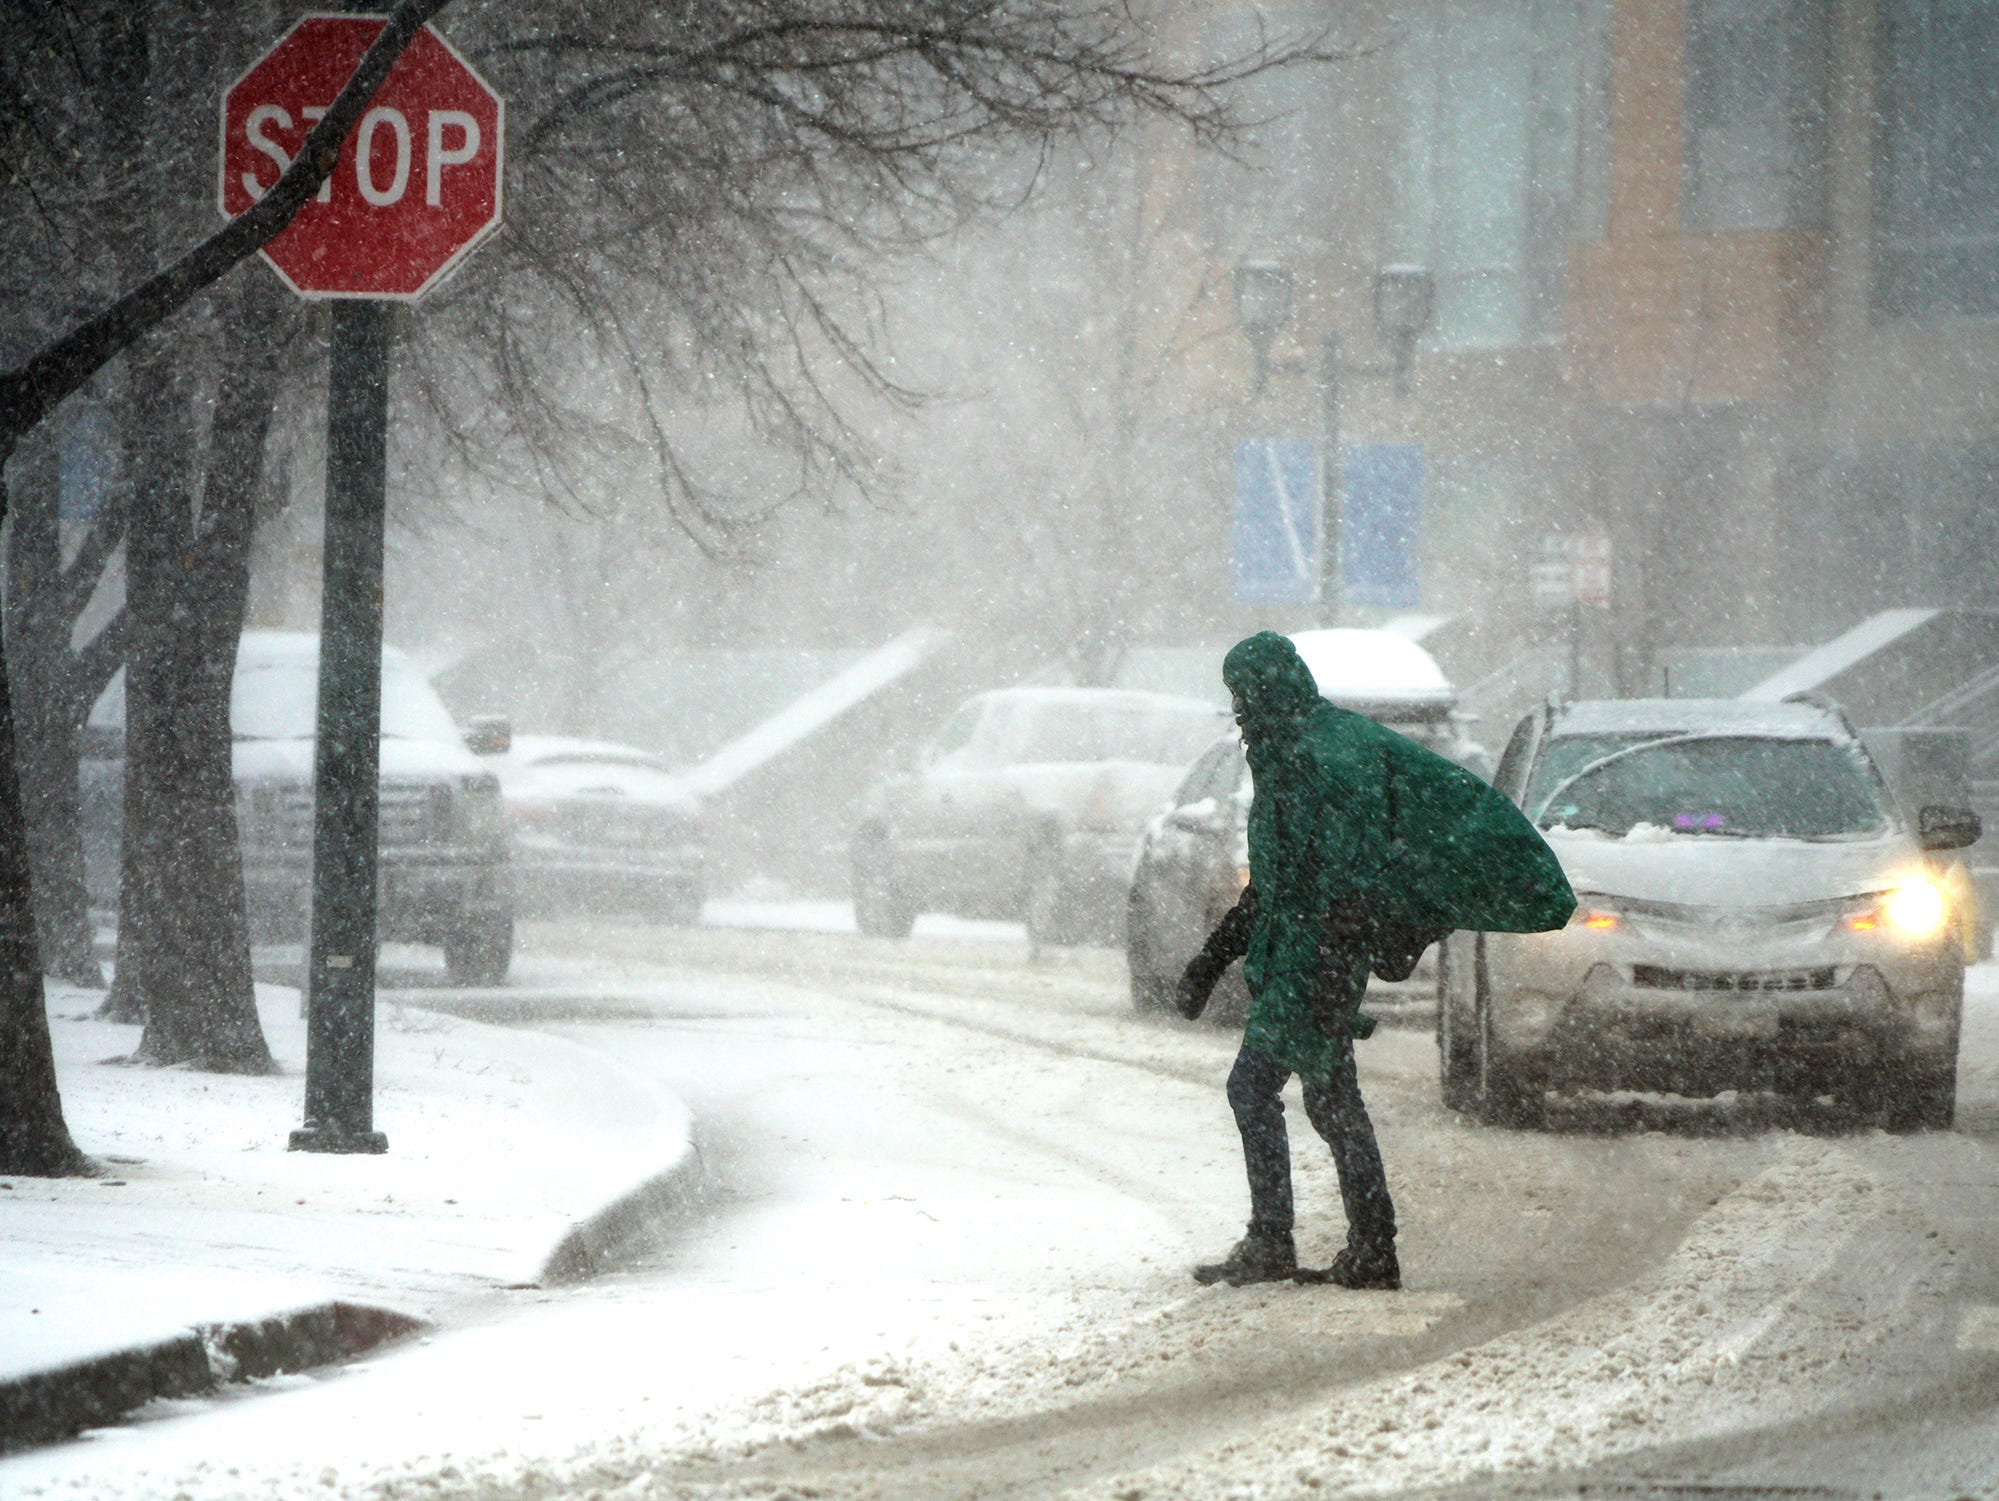 A pedestrian crosses the street in downtown Denver, March 13, 2019, during a blizzard.